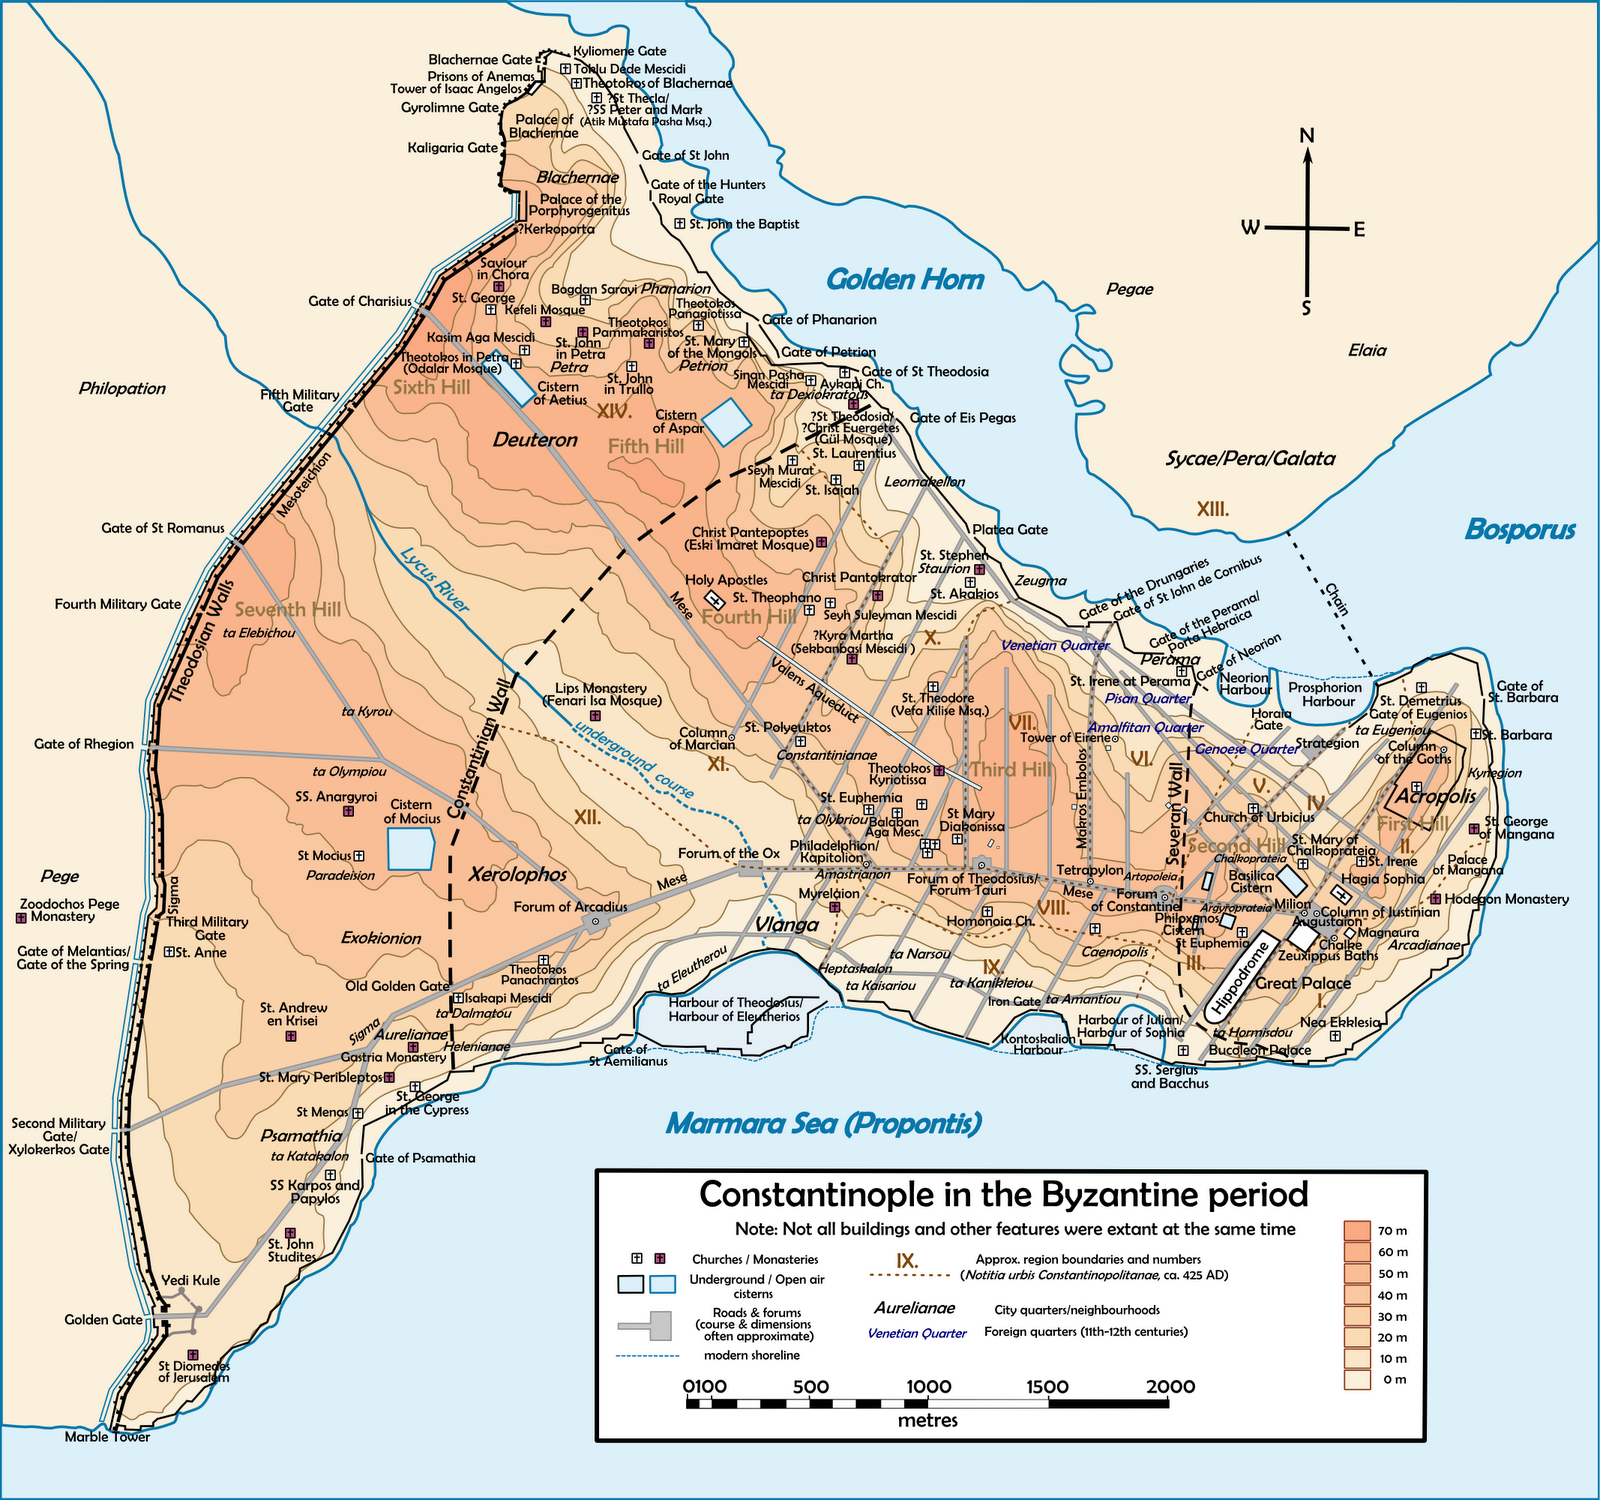 the importance of images in the arab empire Although through most of the sasanian empire's history there would be a push and pull game in mesopotamia and armenia, phillip the arab (roman emperor, r 244-249 ce) would concede to shapur i in order to secure his power over rome, signing a treaty that would hand armenia to persia.